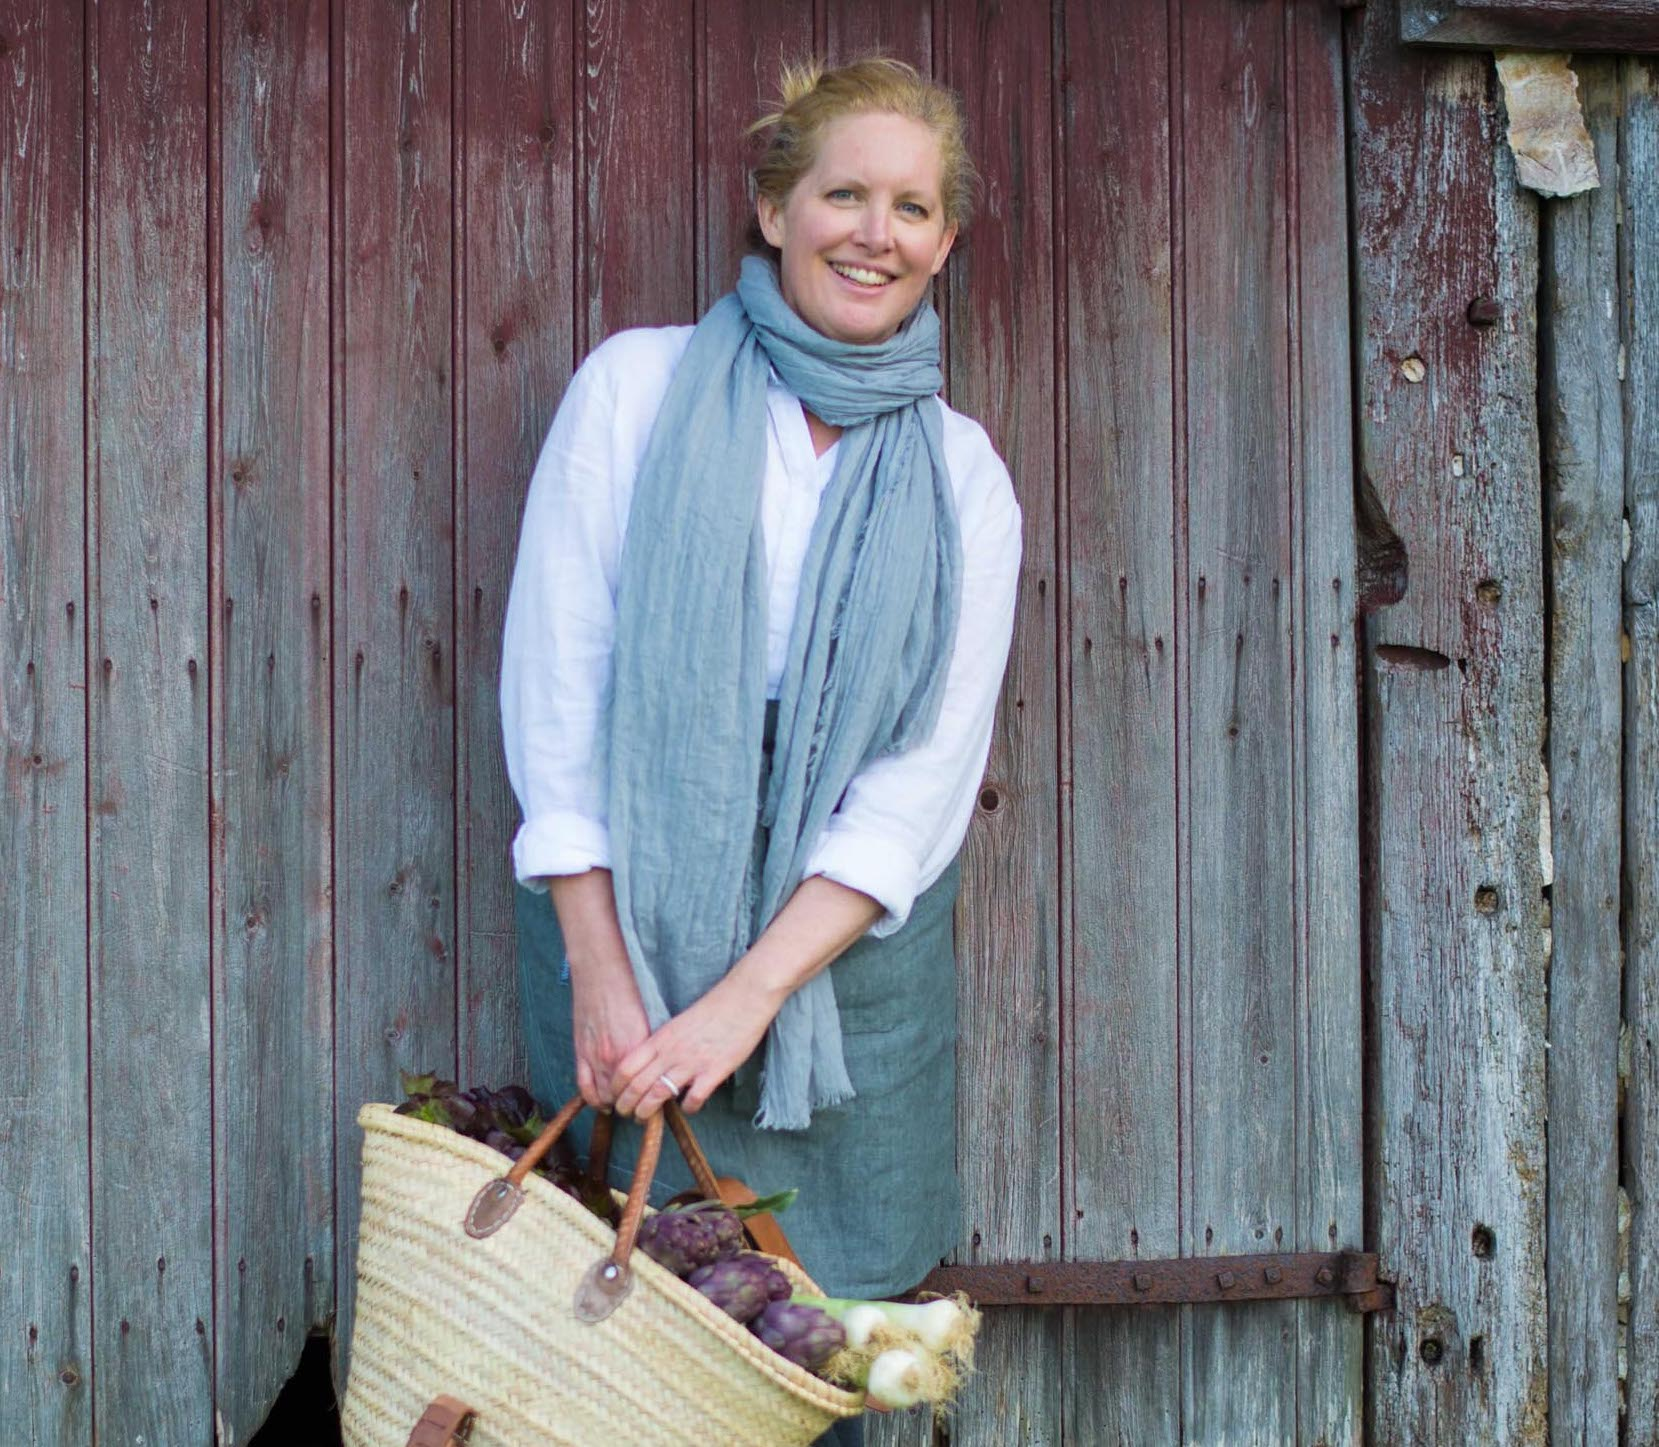 About the Author - Writer, photographer & foodie living on a farm in Normandy called Rabbit Hill, I also run a French lifestyle online pop-up shop and offer French foodie workshops.